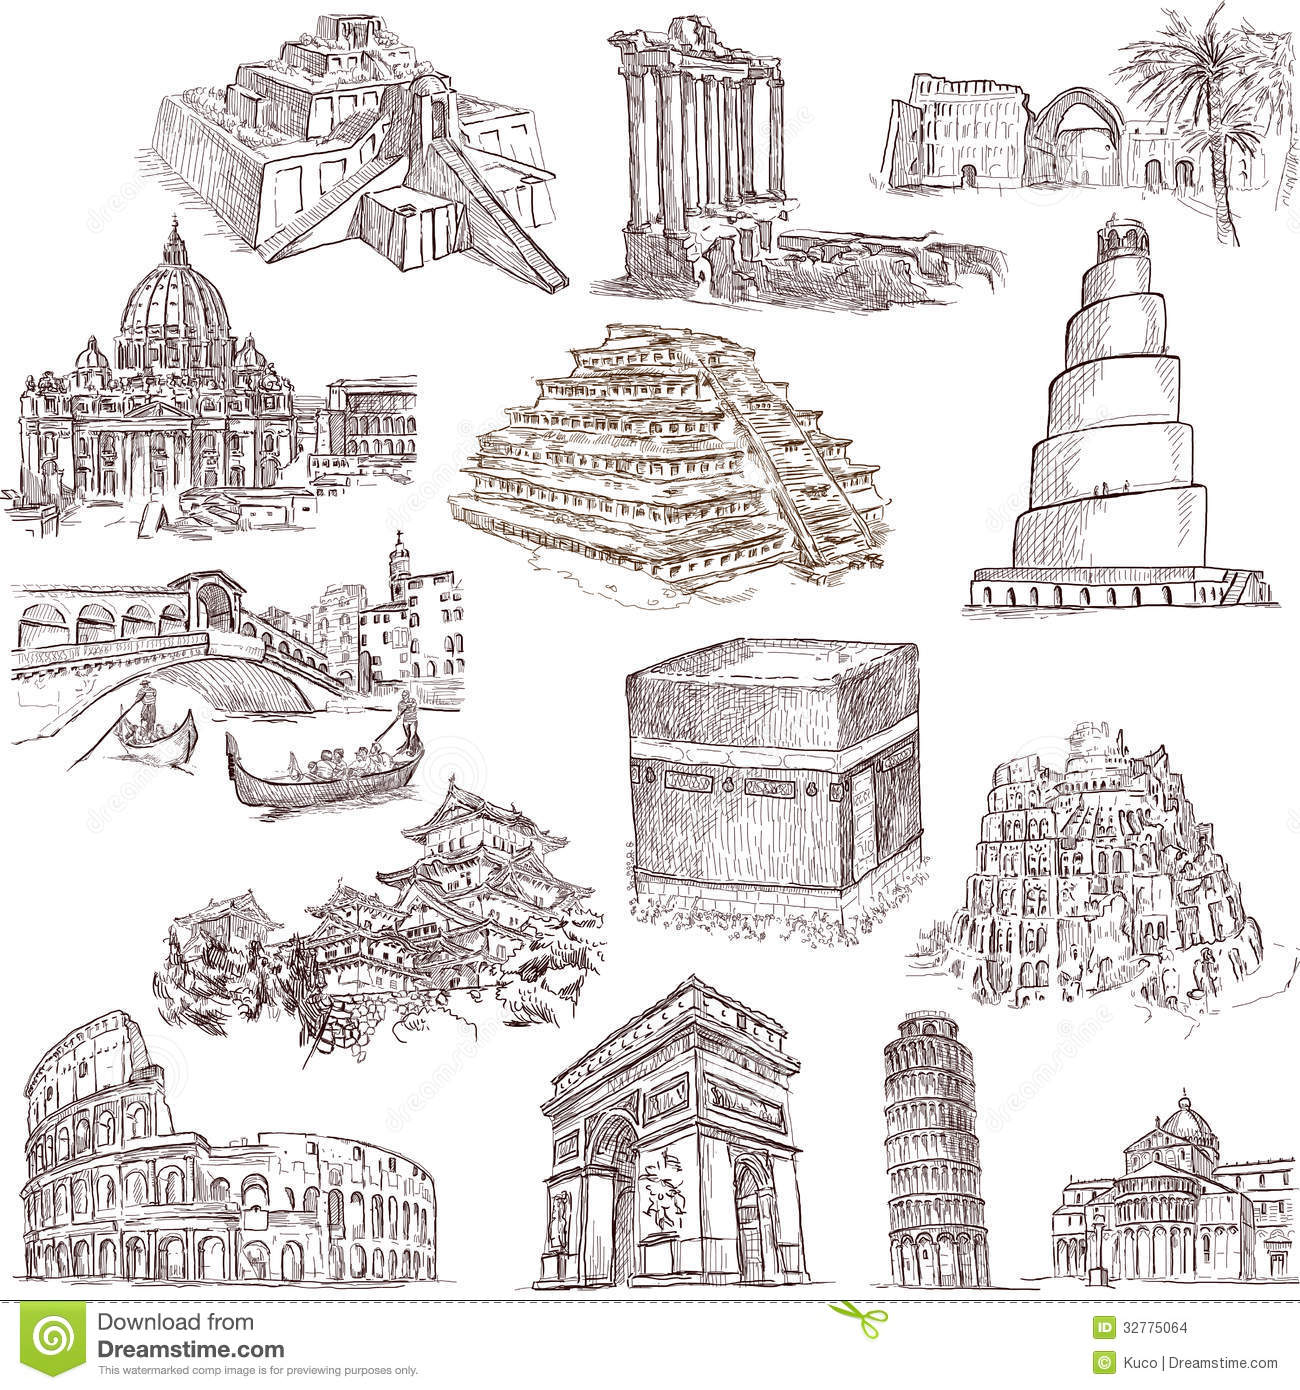 Architecture and places 2 stock vector. Image of orient ...